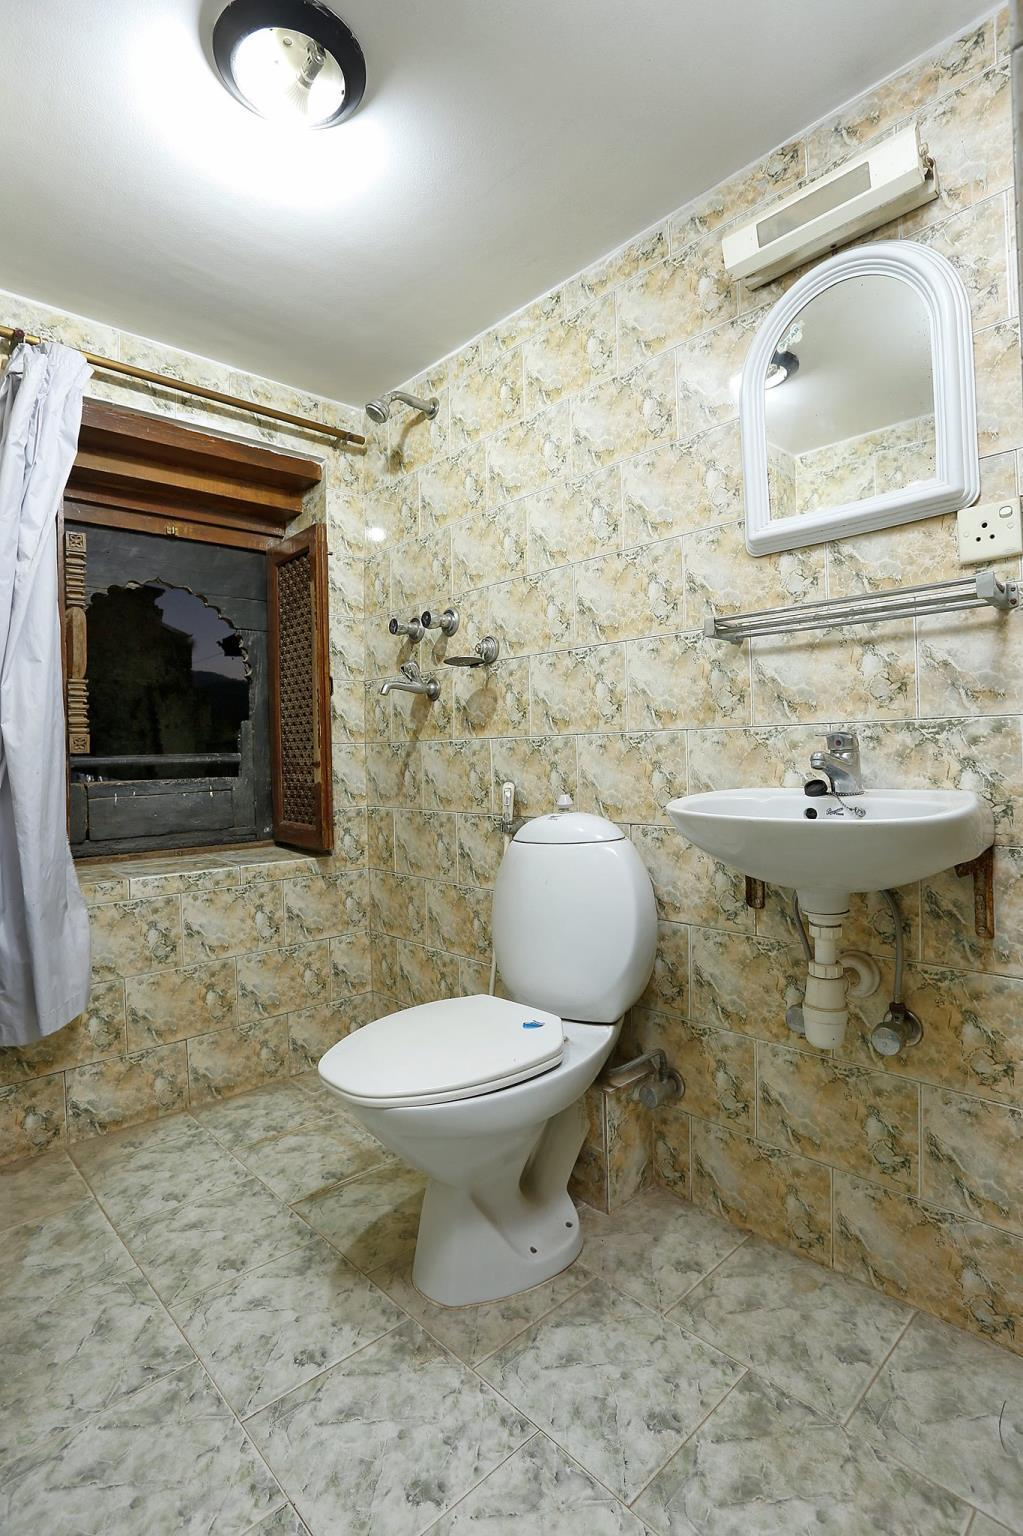 Standard Double (Private bathroom)